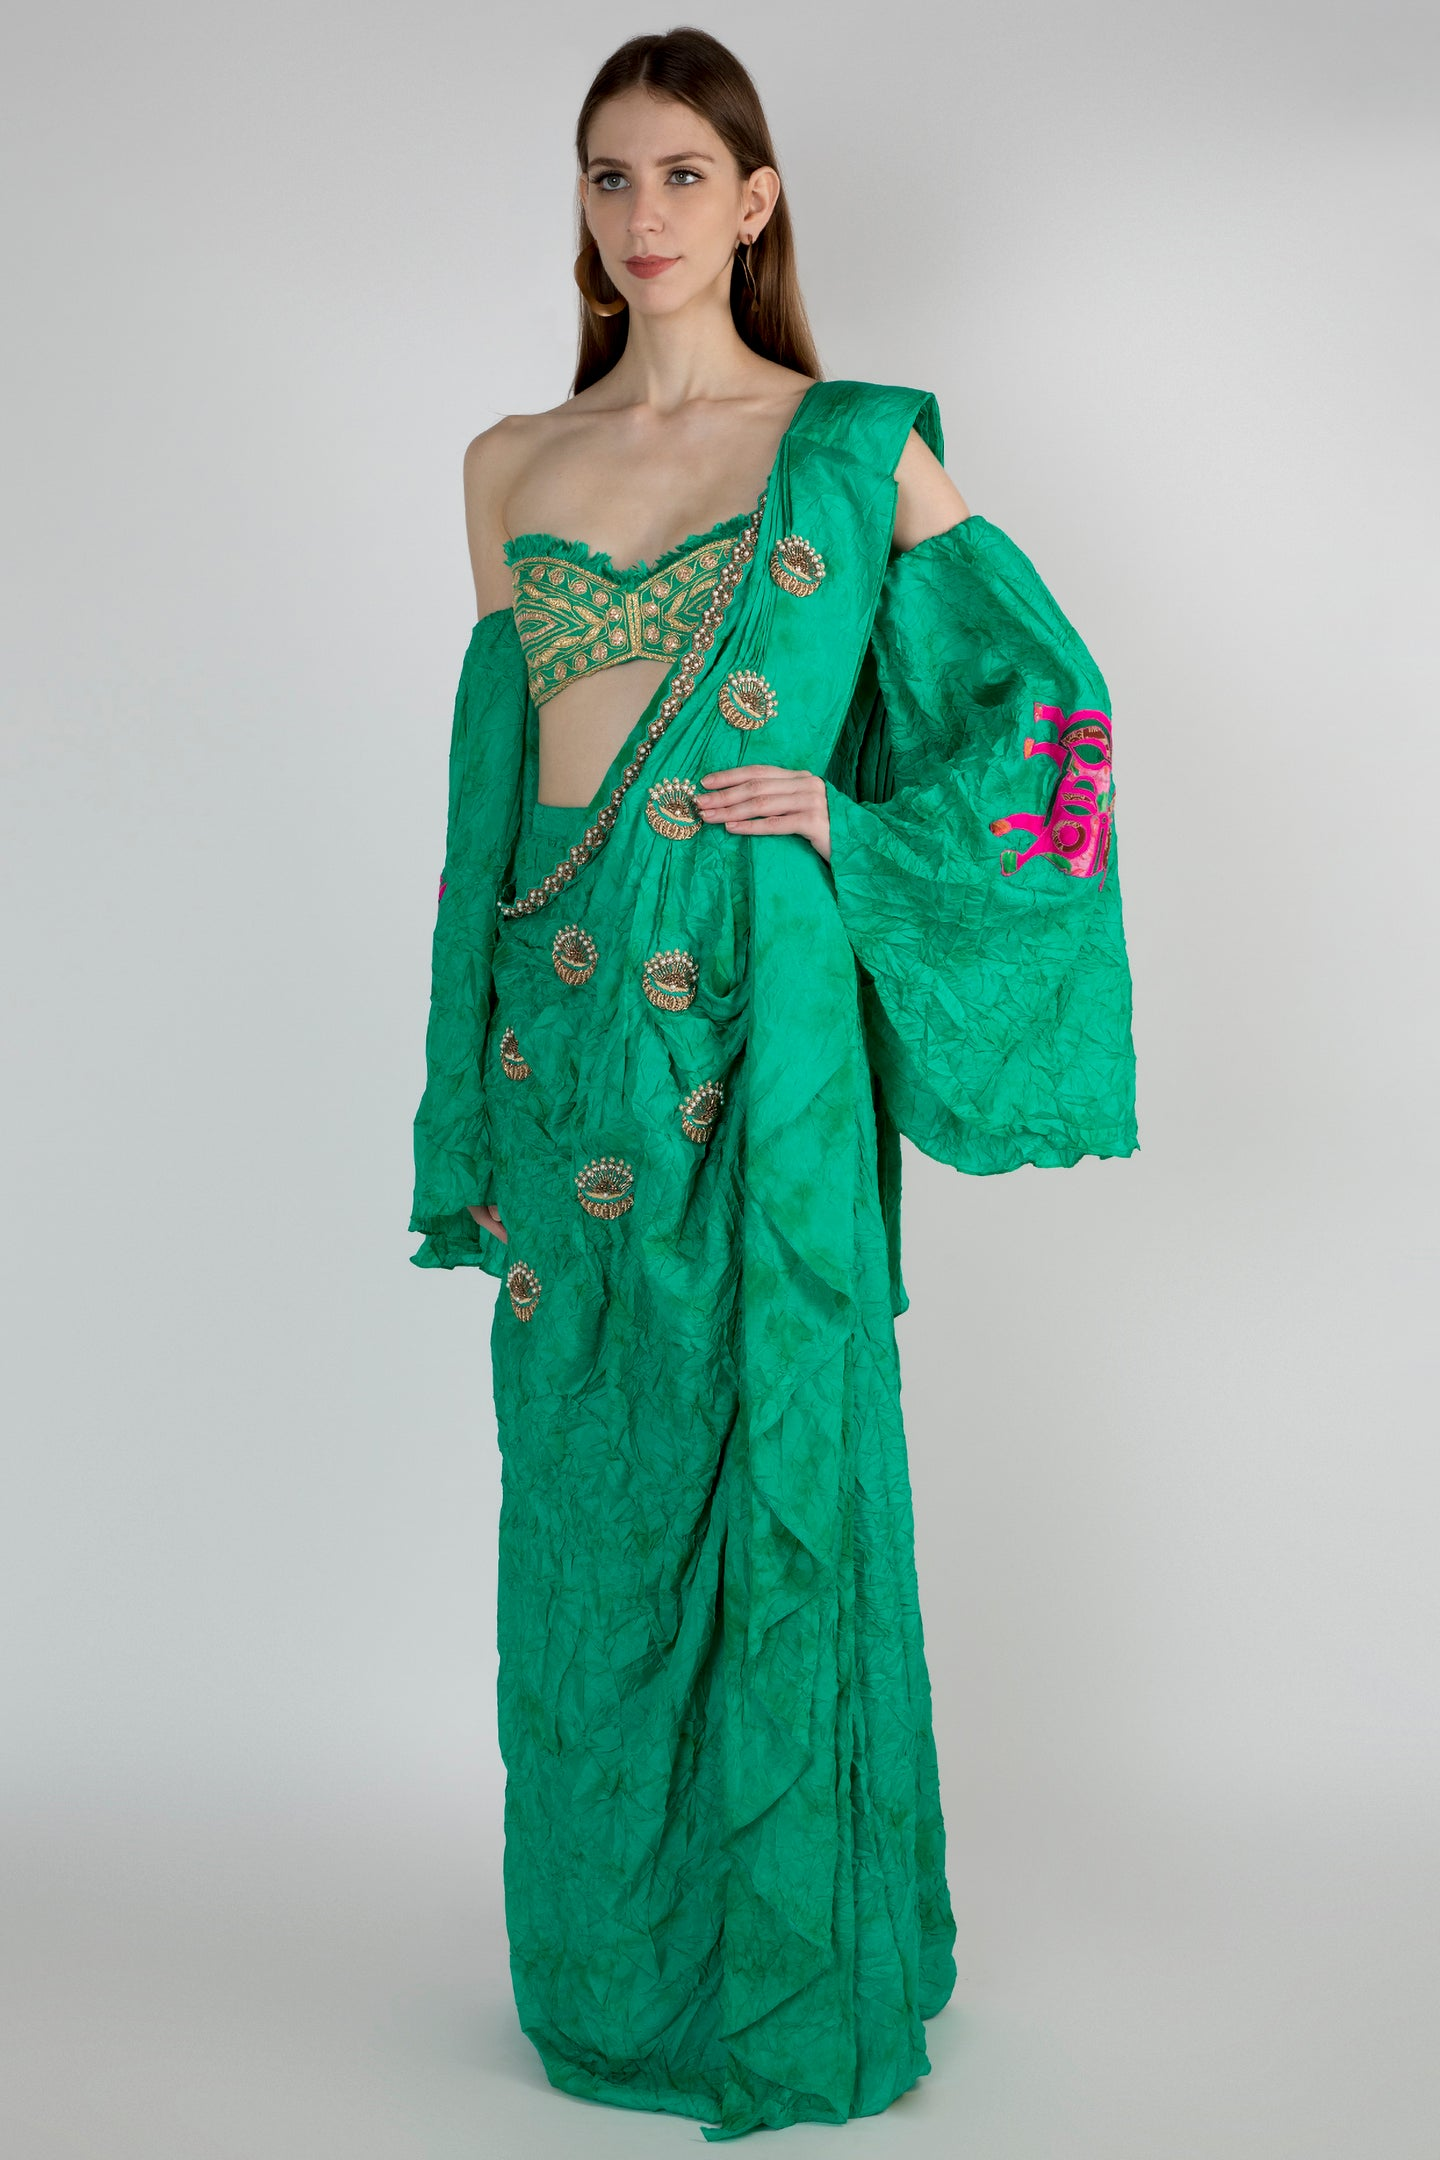 GREEN OMBRE CRUSH SKIRT SARI WITH PLEATED COWL EMBELLISHED PALLA WITH READY BLOUSE - The Grand Trunk